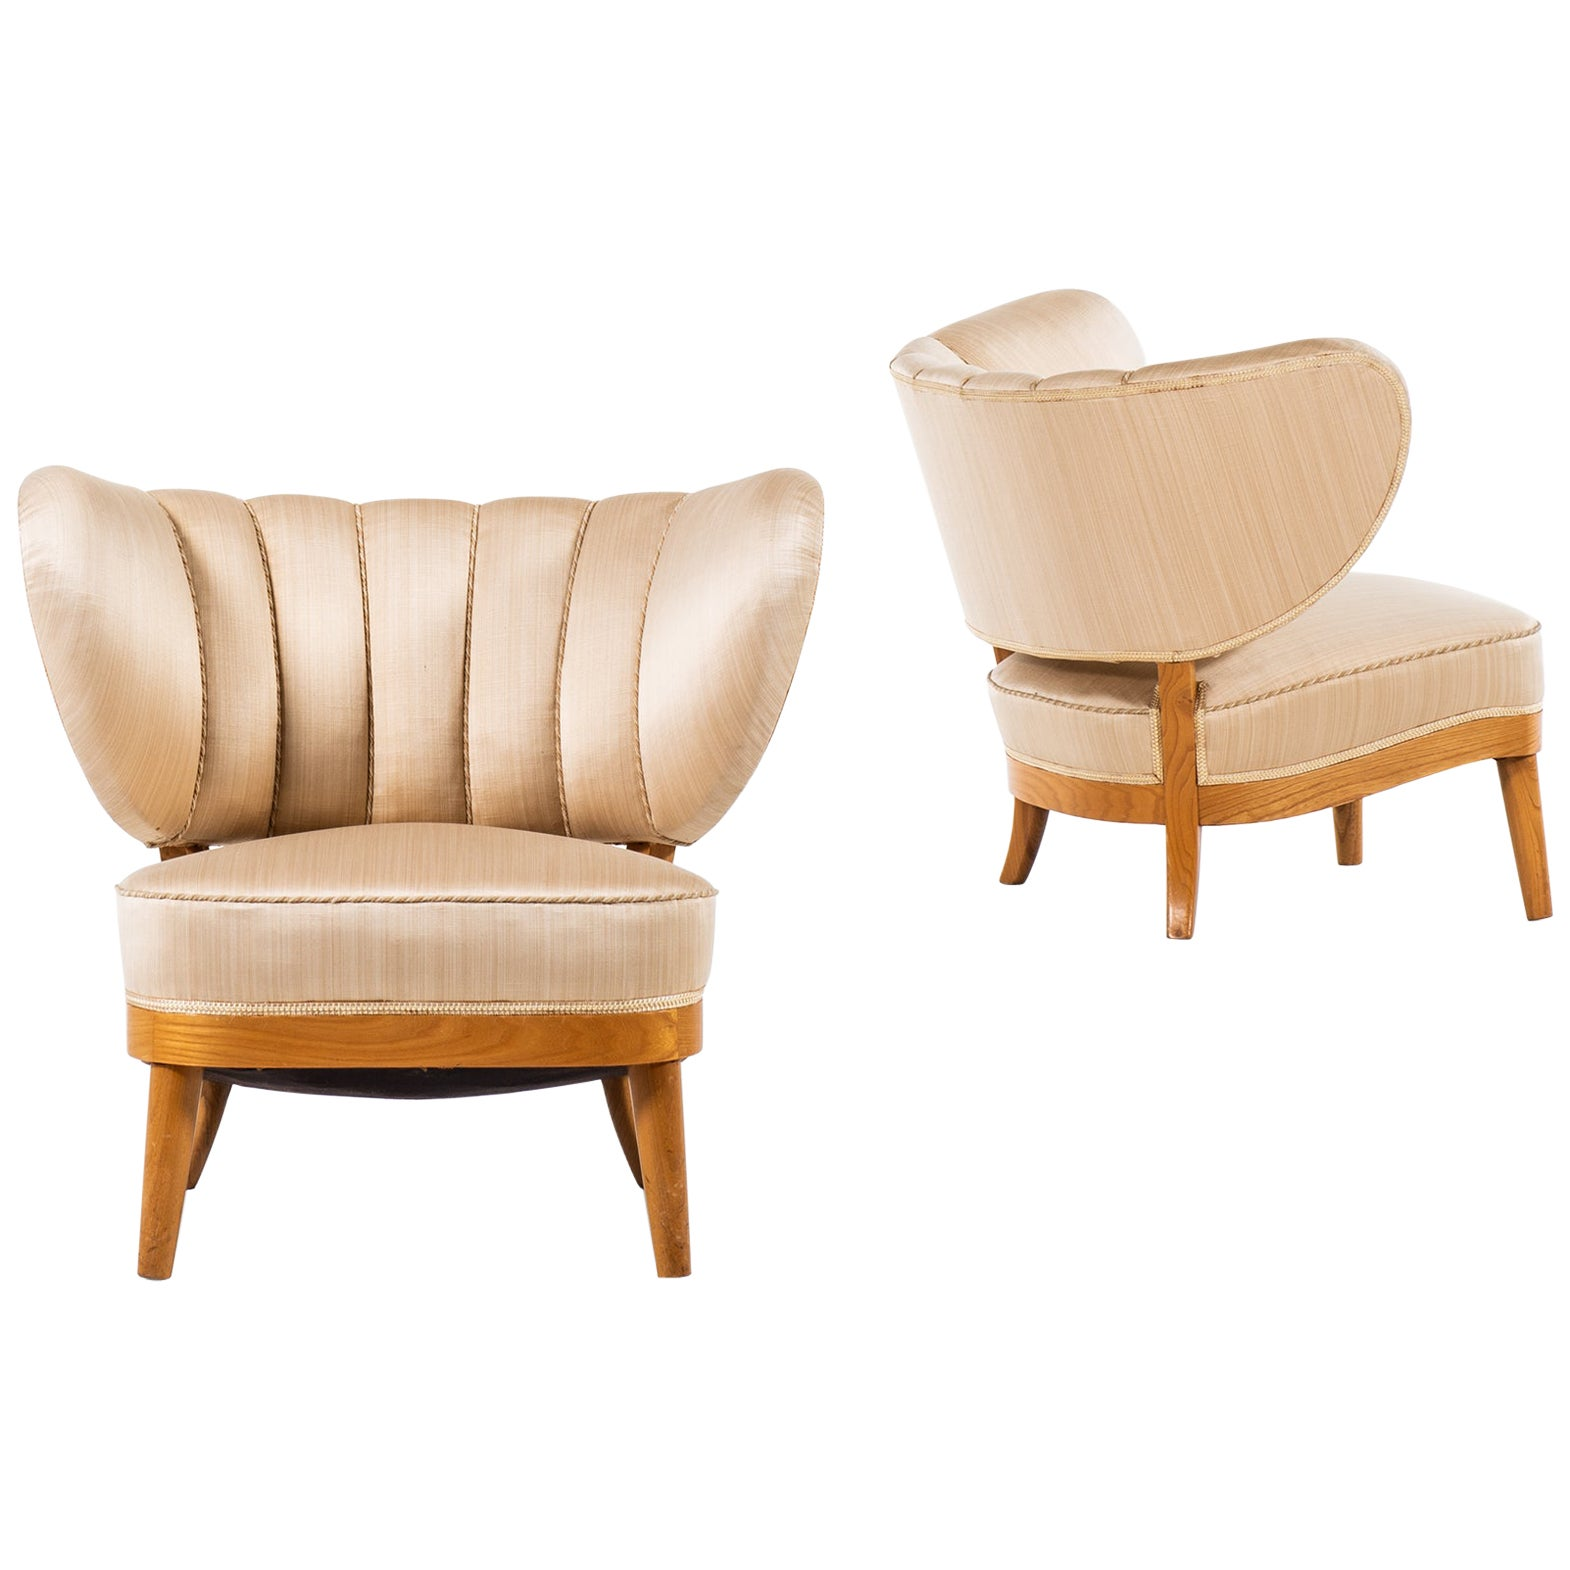 Otto Schulz Easy Chairs Produced by Boet in Sweden